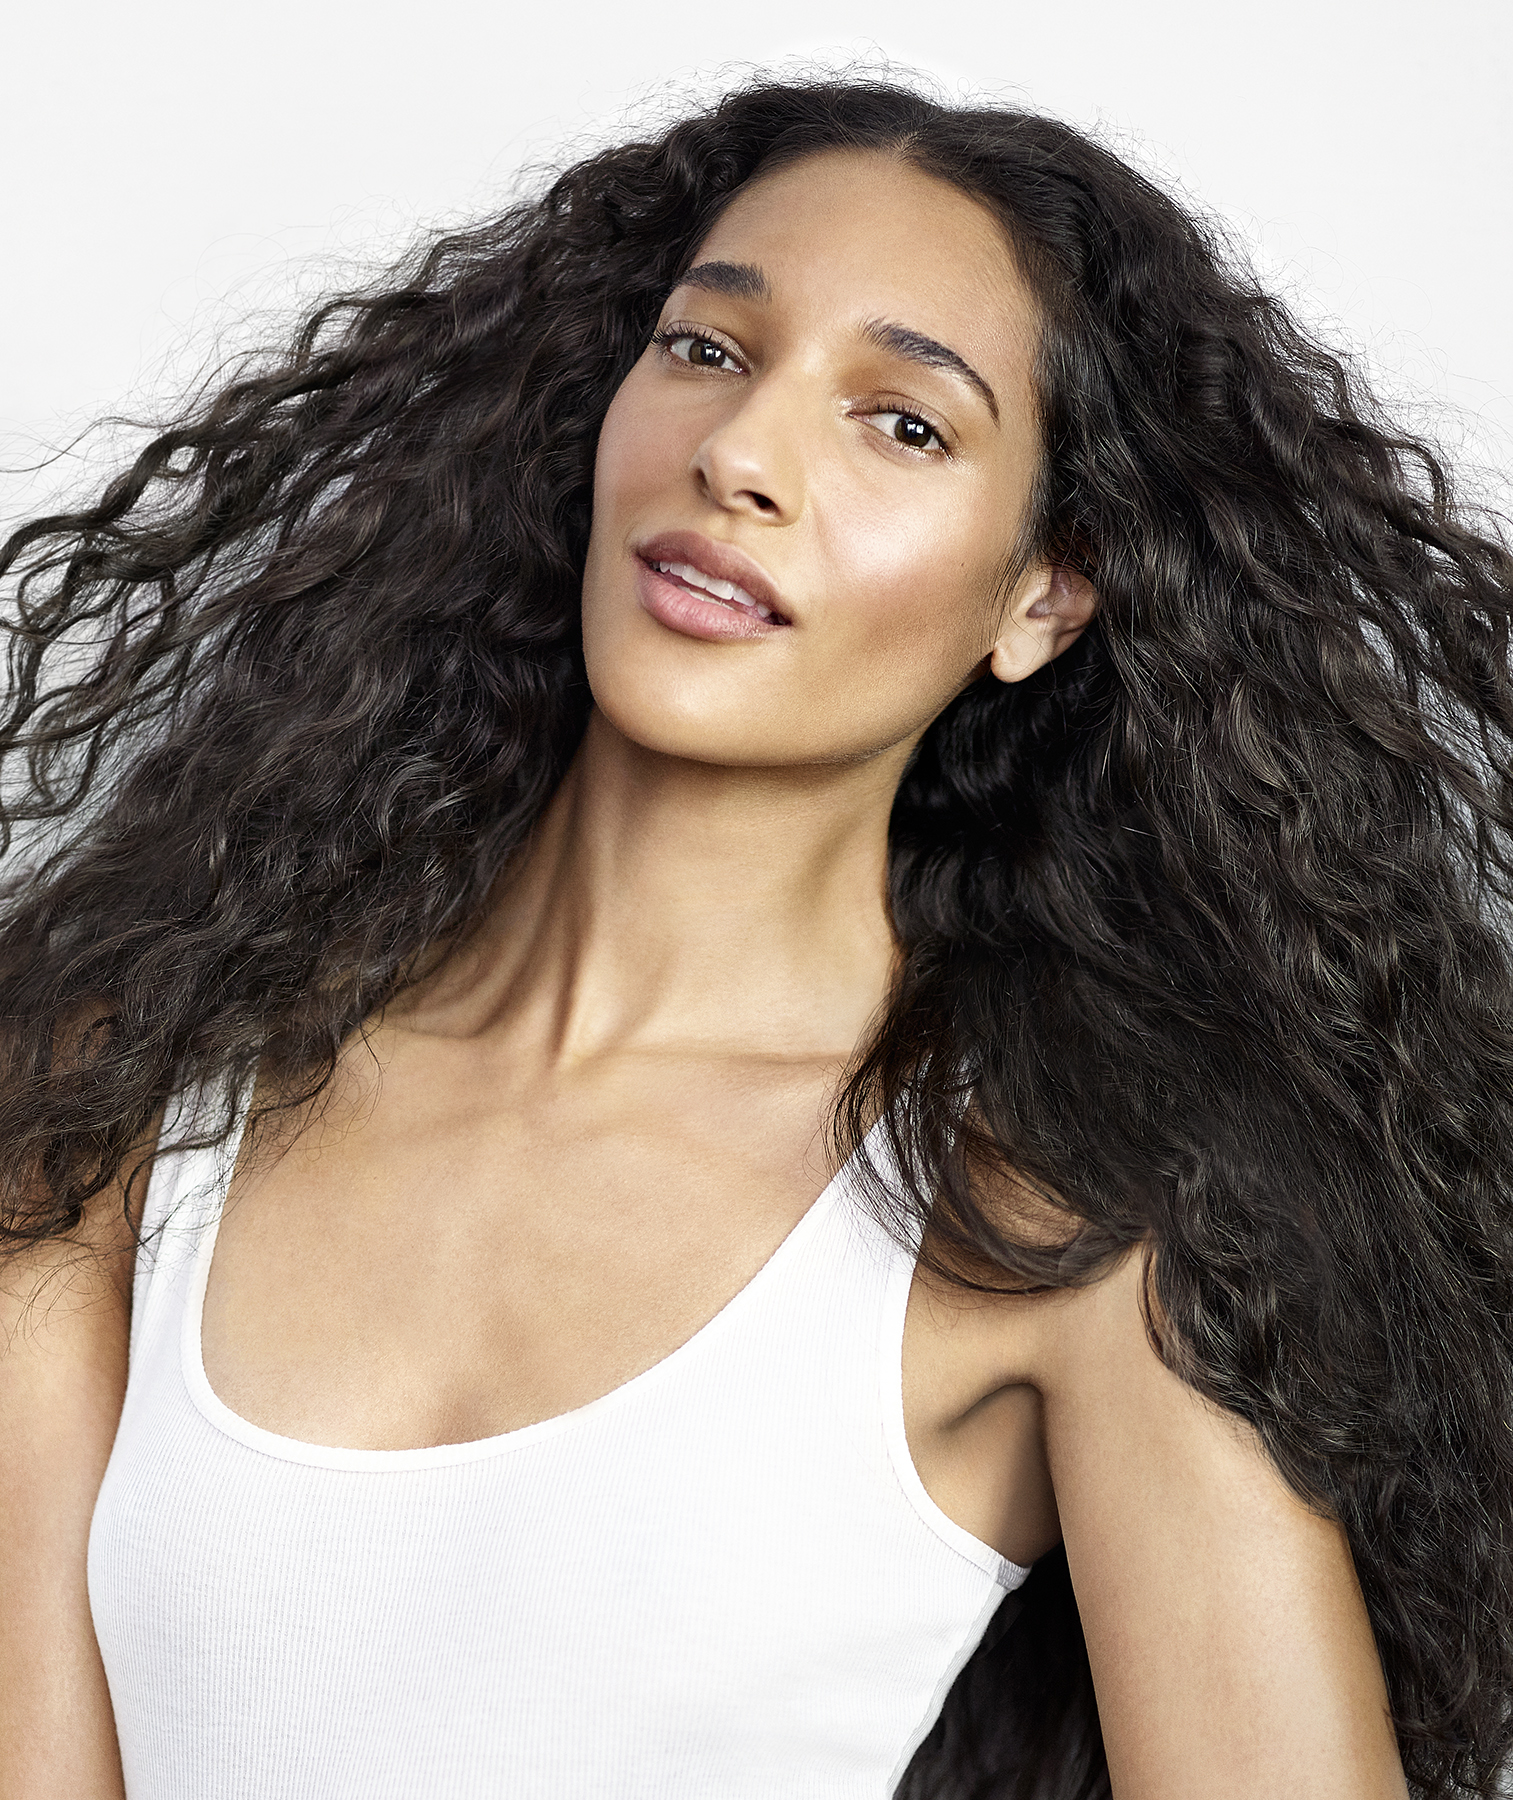 Model with air-dried curly hair